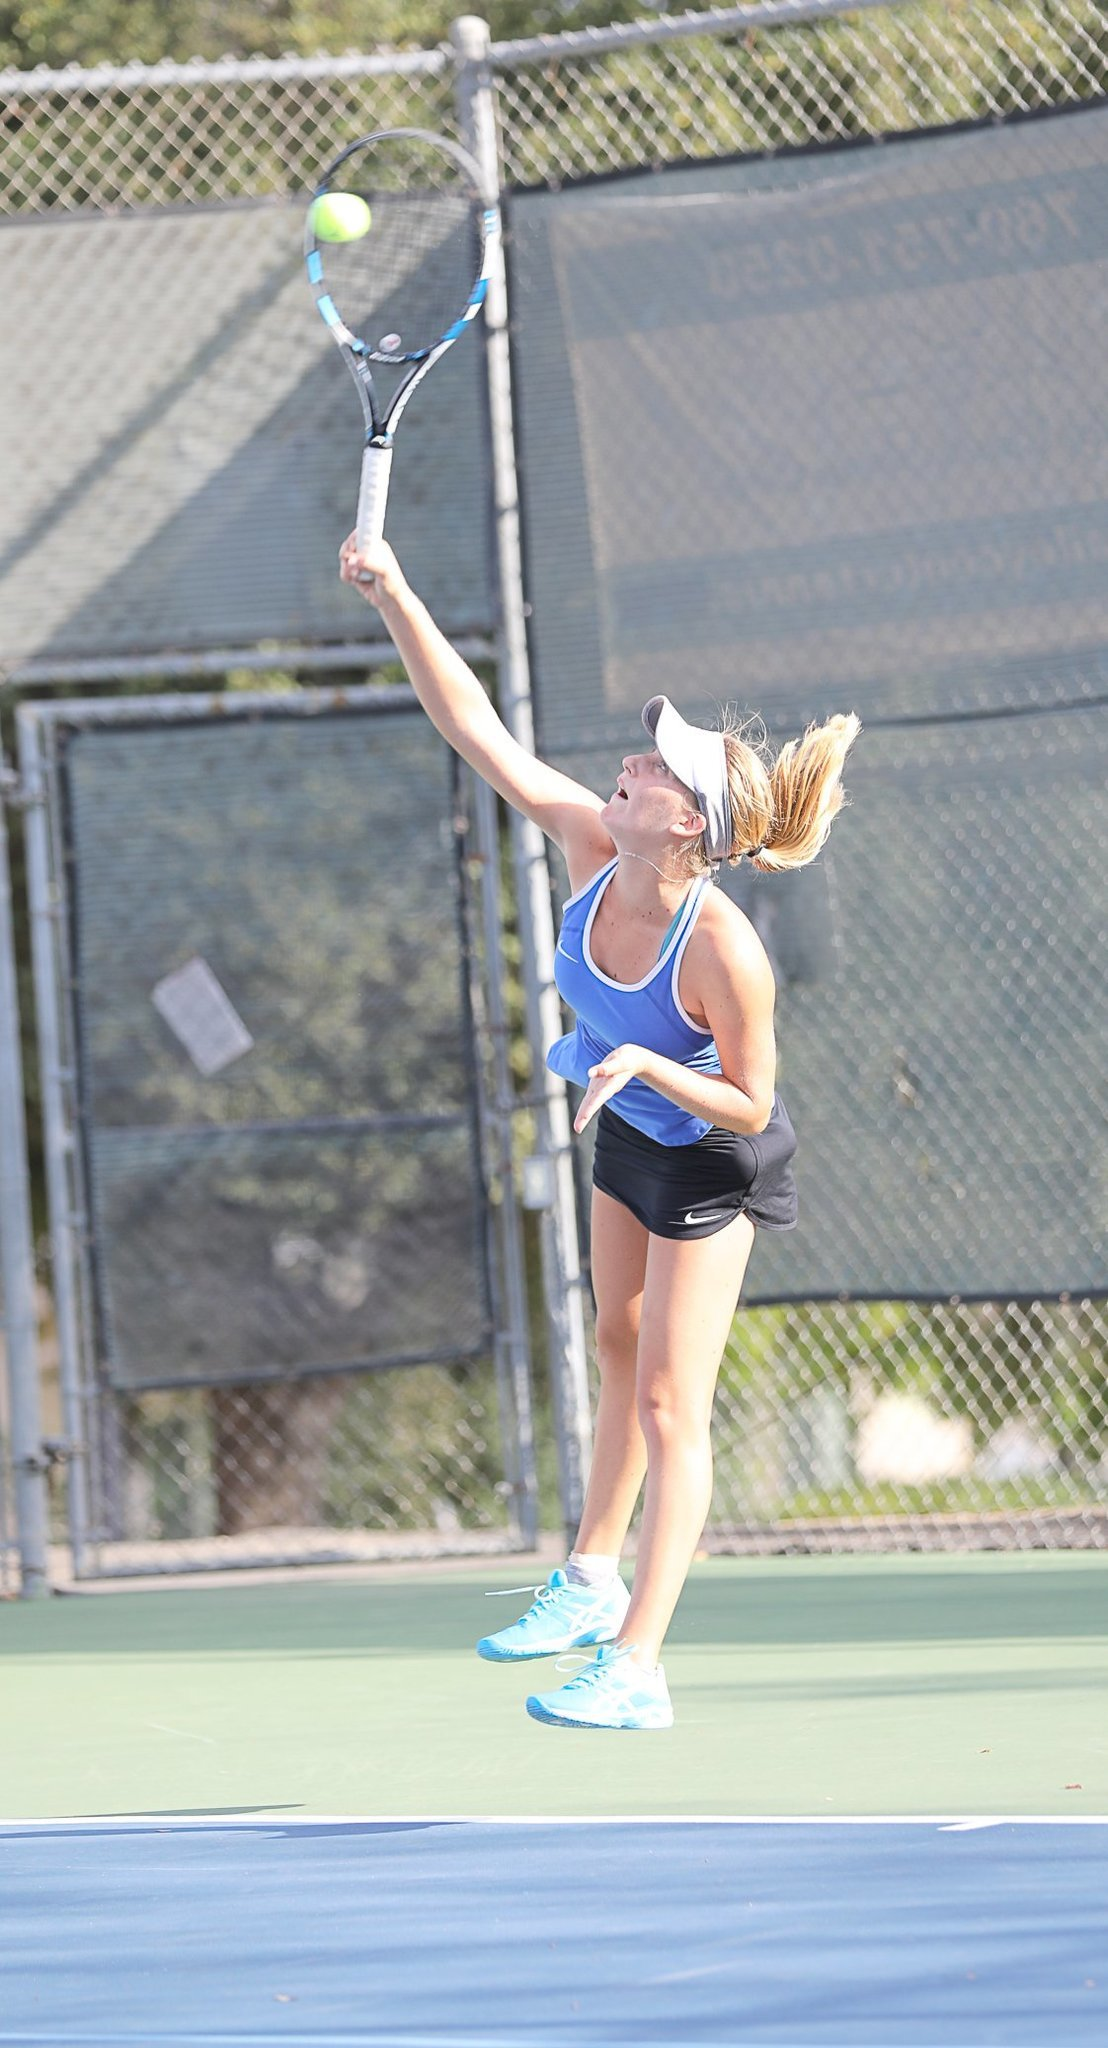 Julia Failla, who has a 24-0 record, leaps for the ball and wins three sets against her Jaguar opponent.